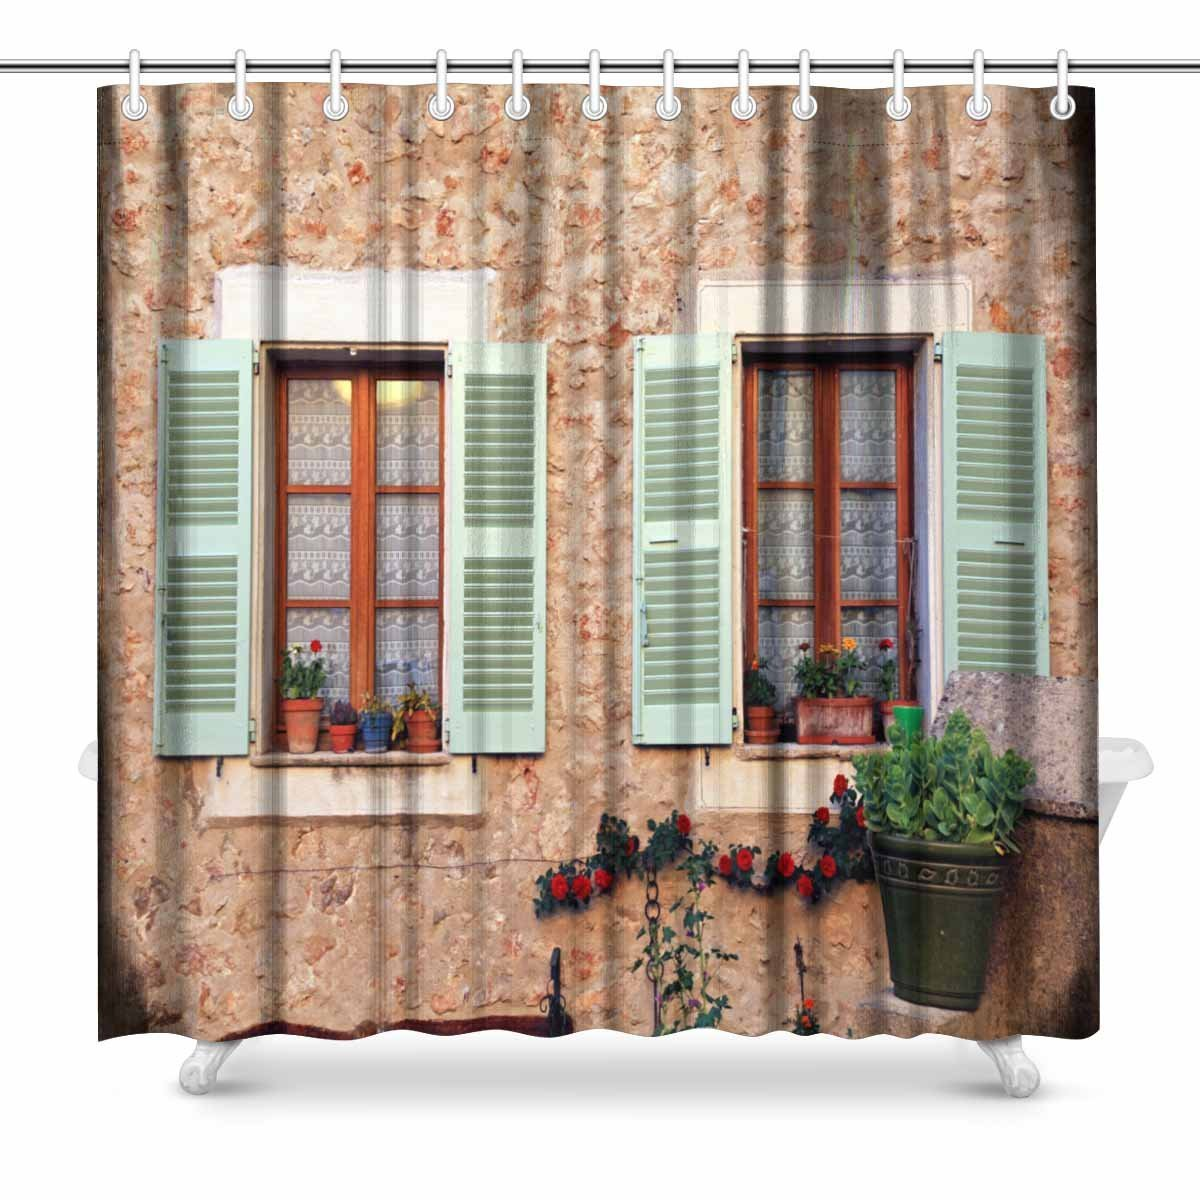 Us 14 23 61 Off Aplysia Two French Rustic Windows With Old Green Shutters And Flower Pots In Stone Rural House Provence France Shower Curtains In